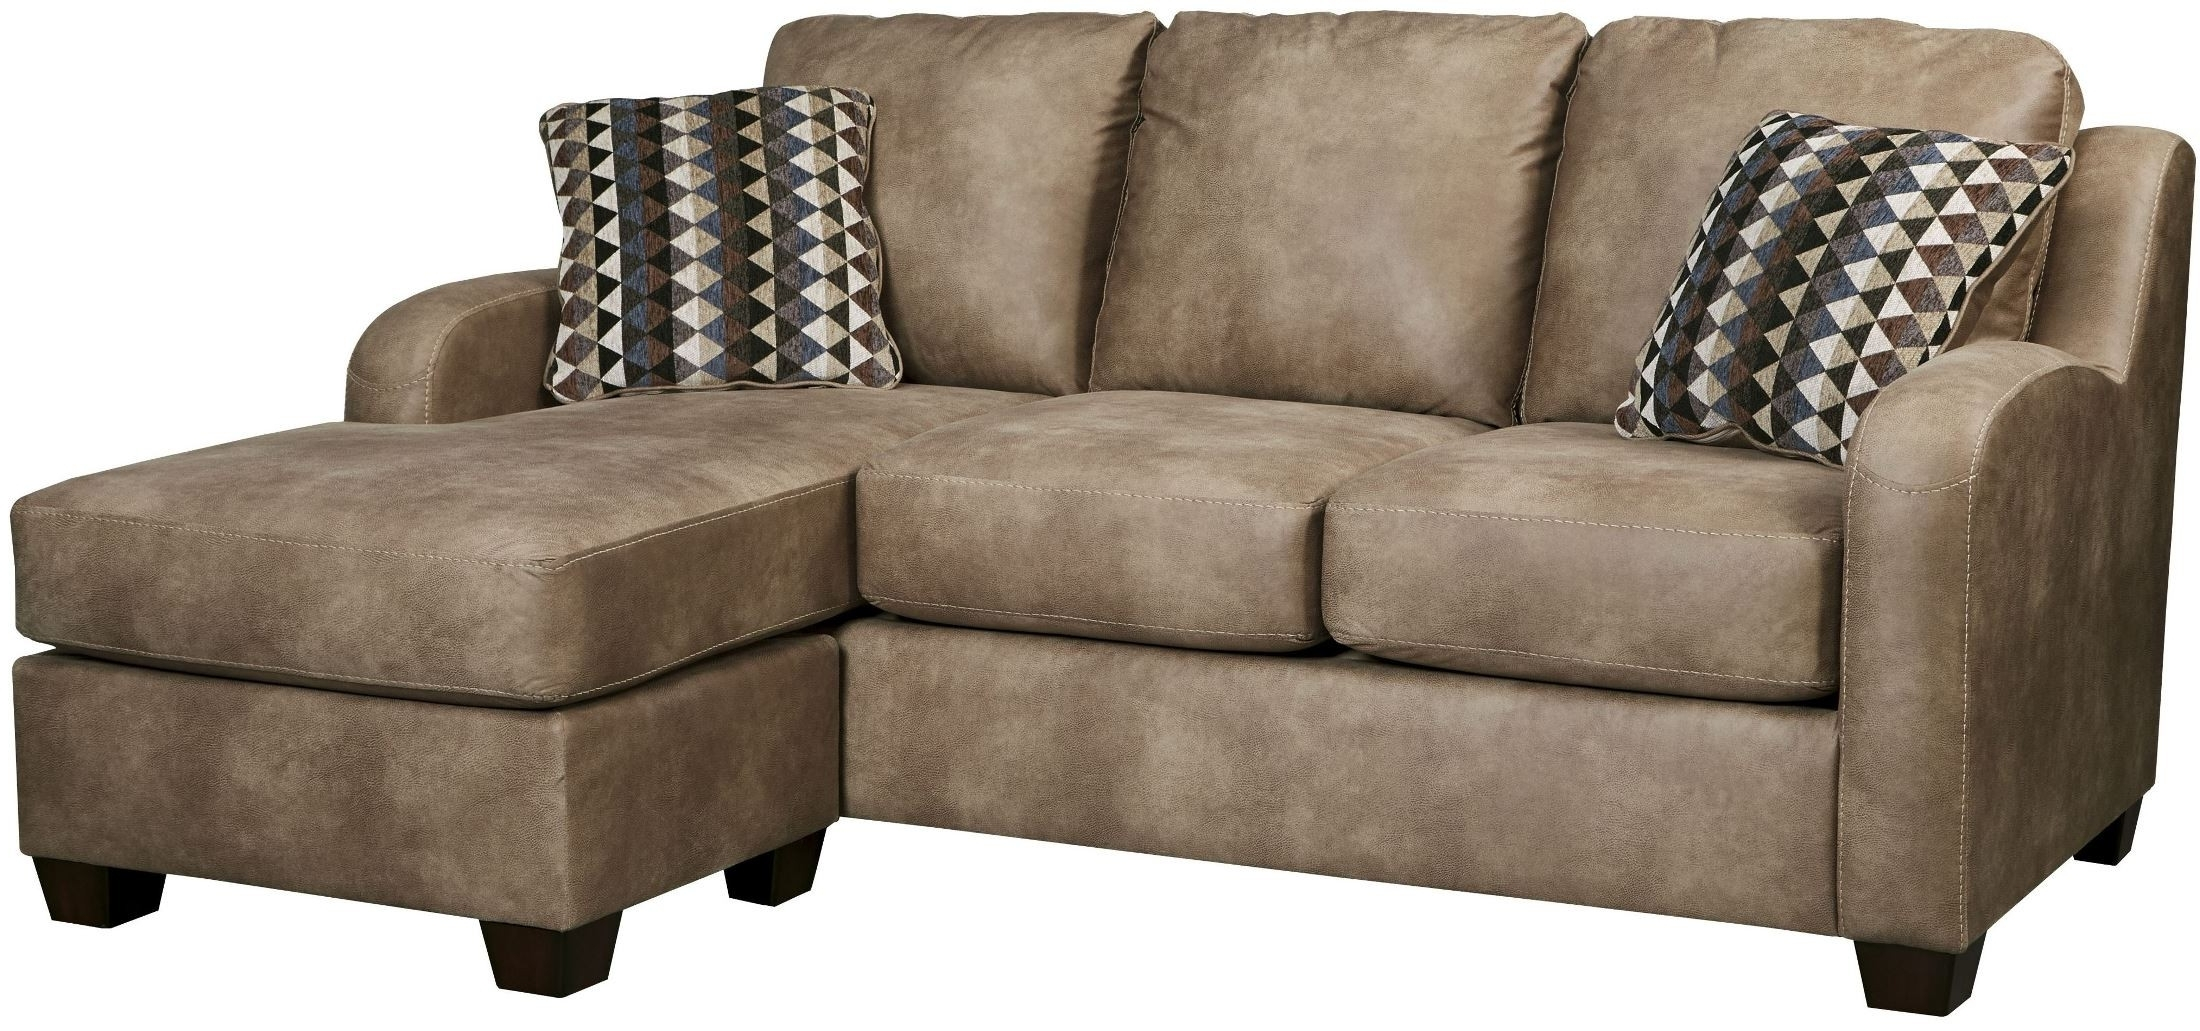 Trendy Ashley Chaise Sofas With Alturo Dune Sofa Chaise From Ashley (6000318) (View 7 of 15)